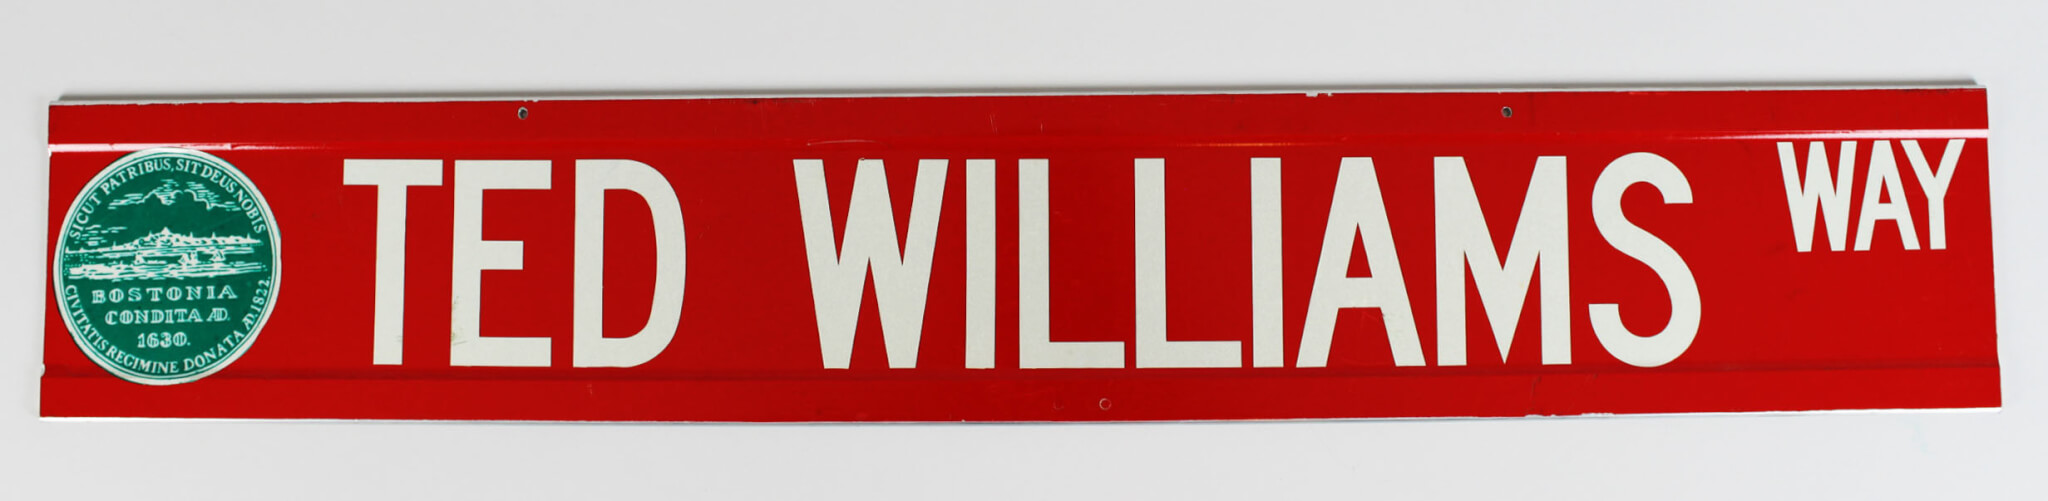 """Boston Red Sox - Ted Williams """" Ted Williams Way """" 6x36 Street Sign"""